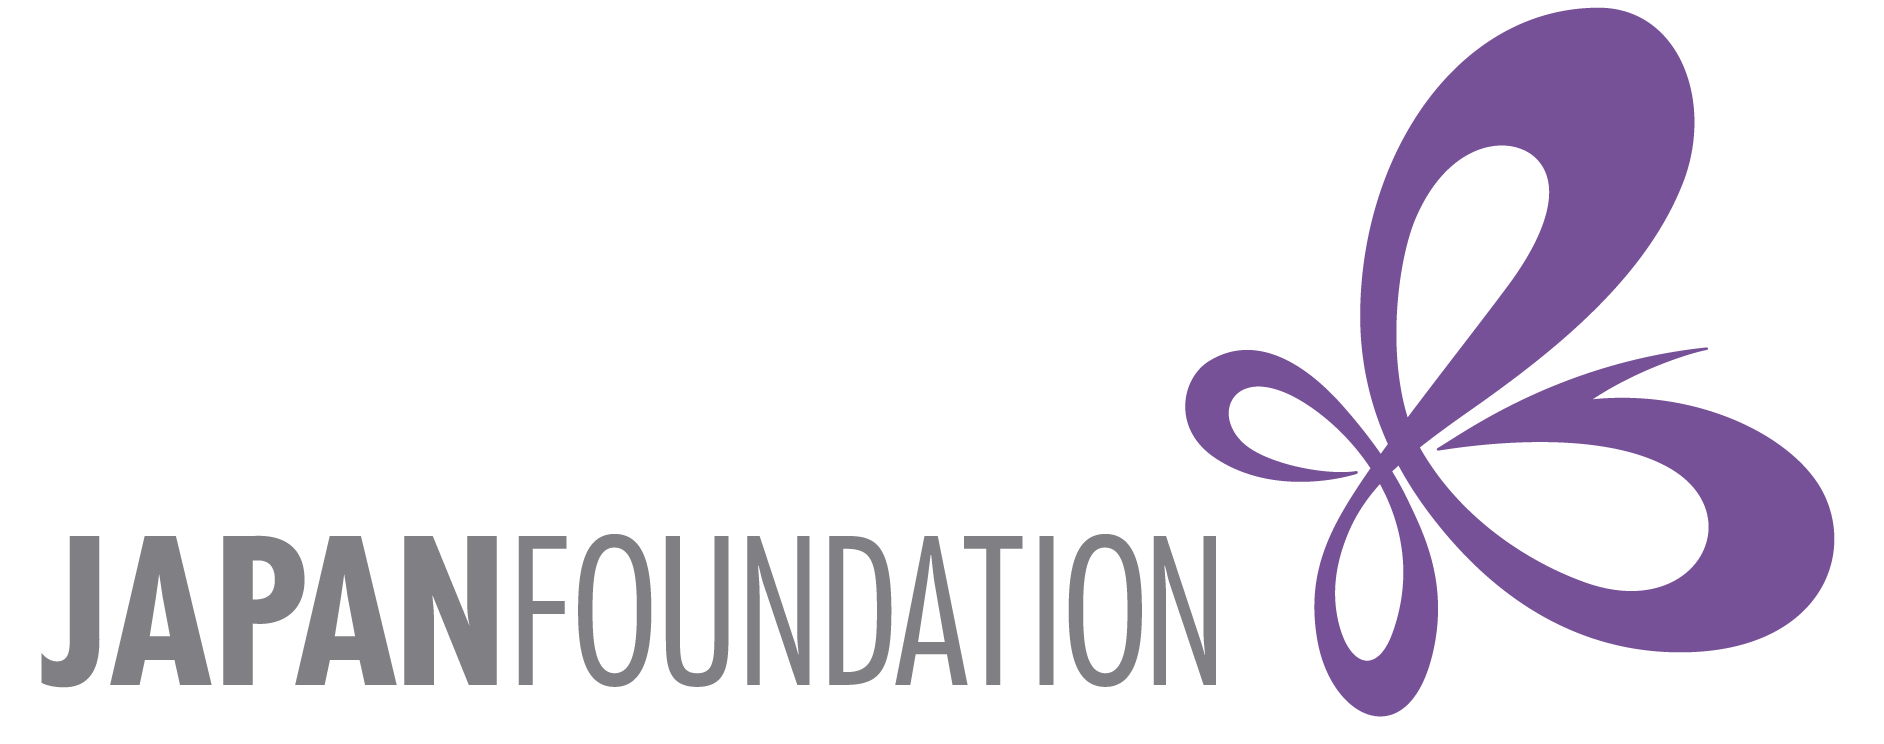 Japan Foundation logo